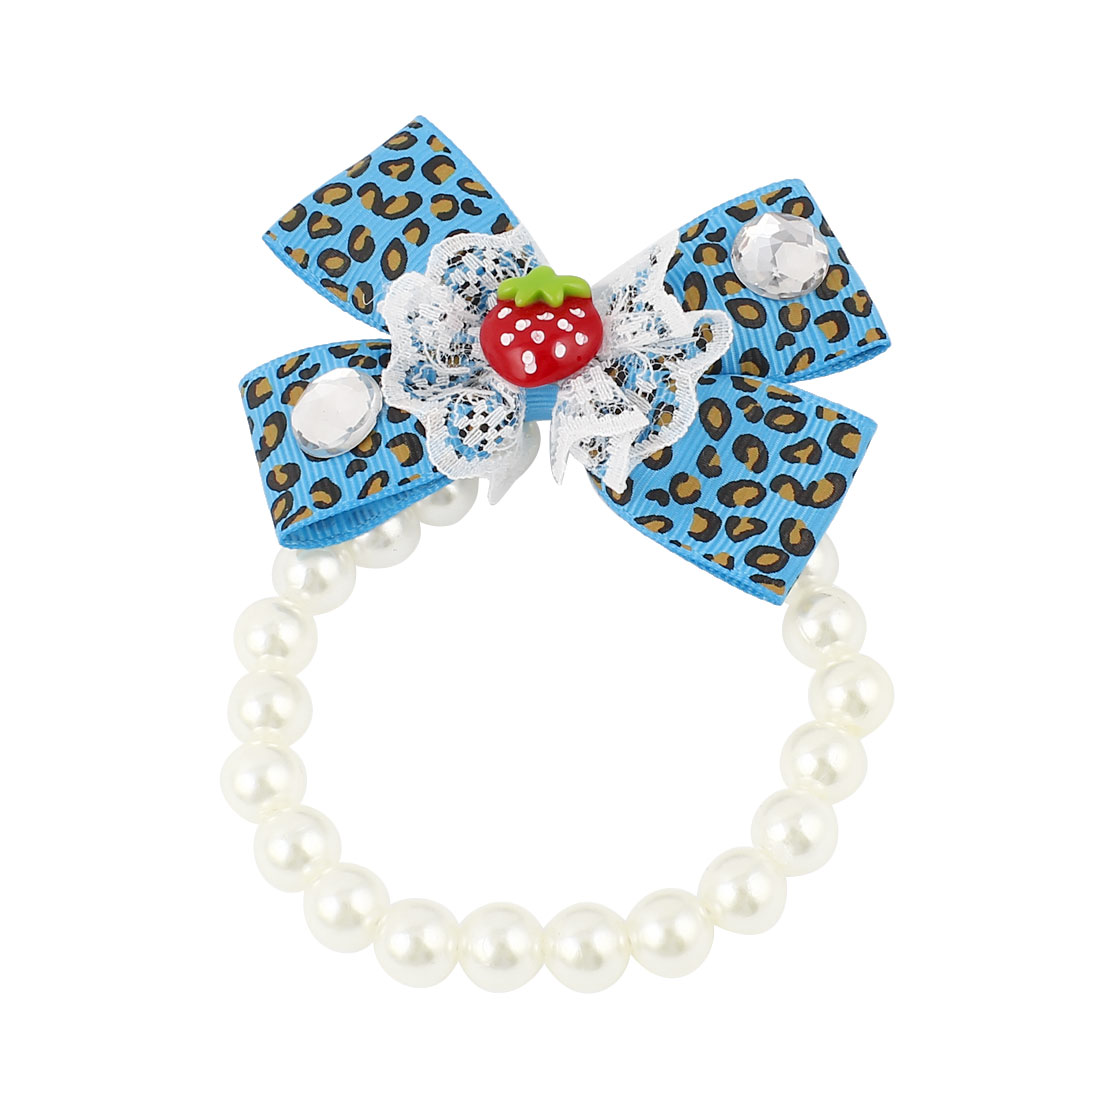 Lace Bowknot Accent Pet Dog Plastic Beads Pearls Collar Necklace White Blue XS